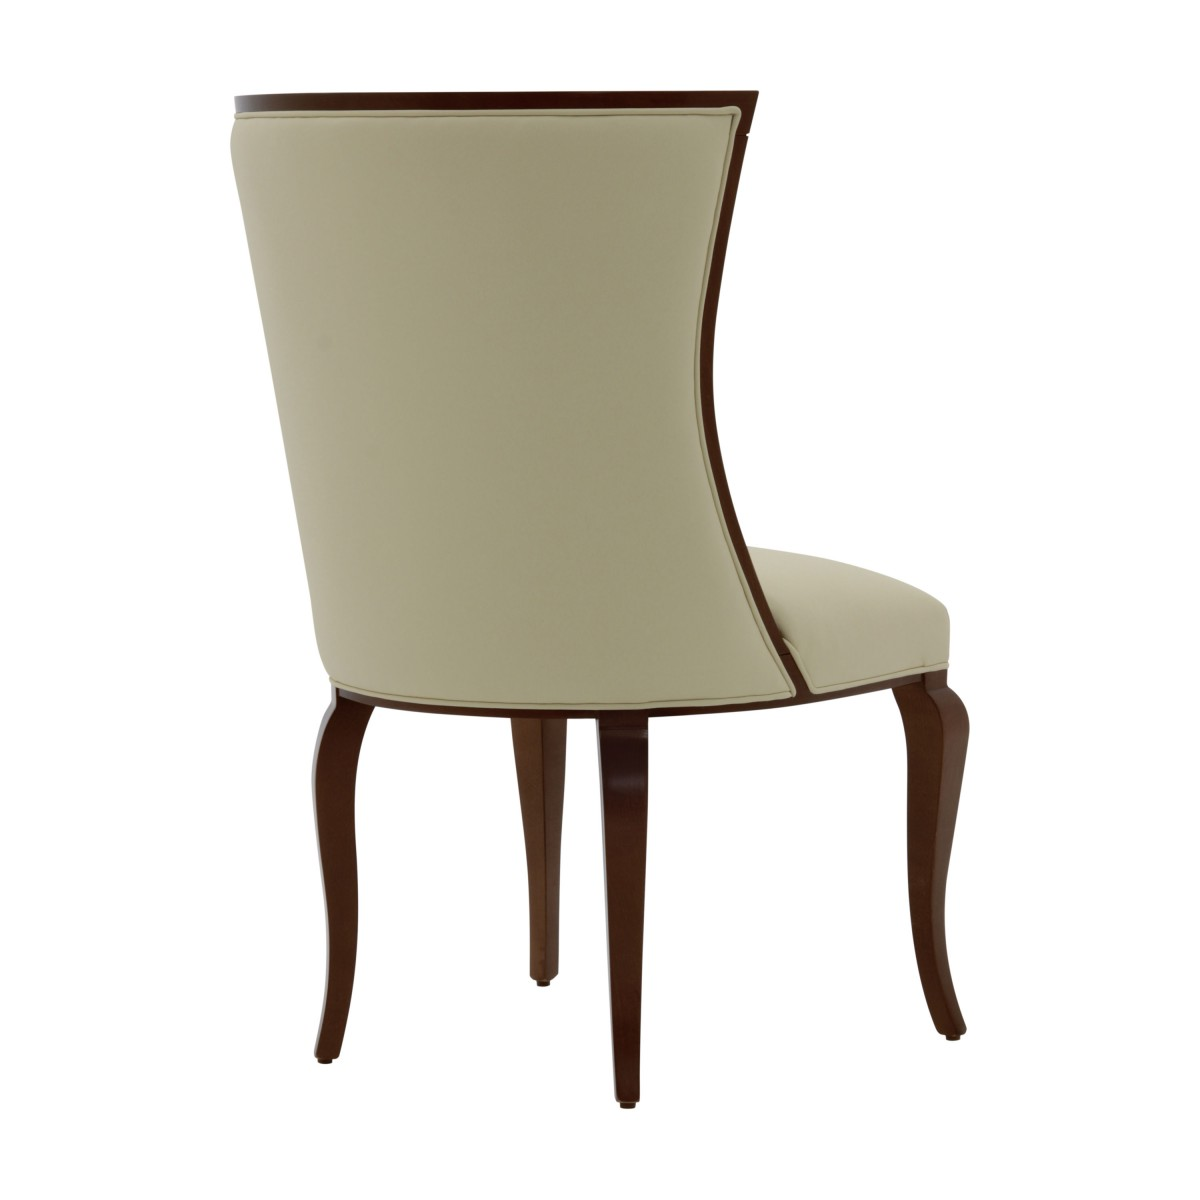 italian classic chair scalea 1 3515